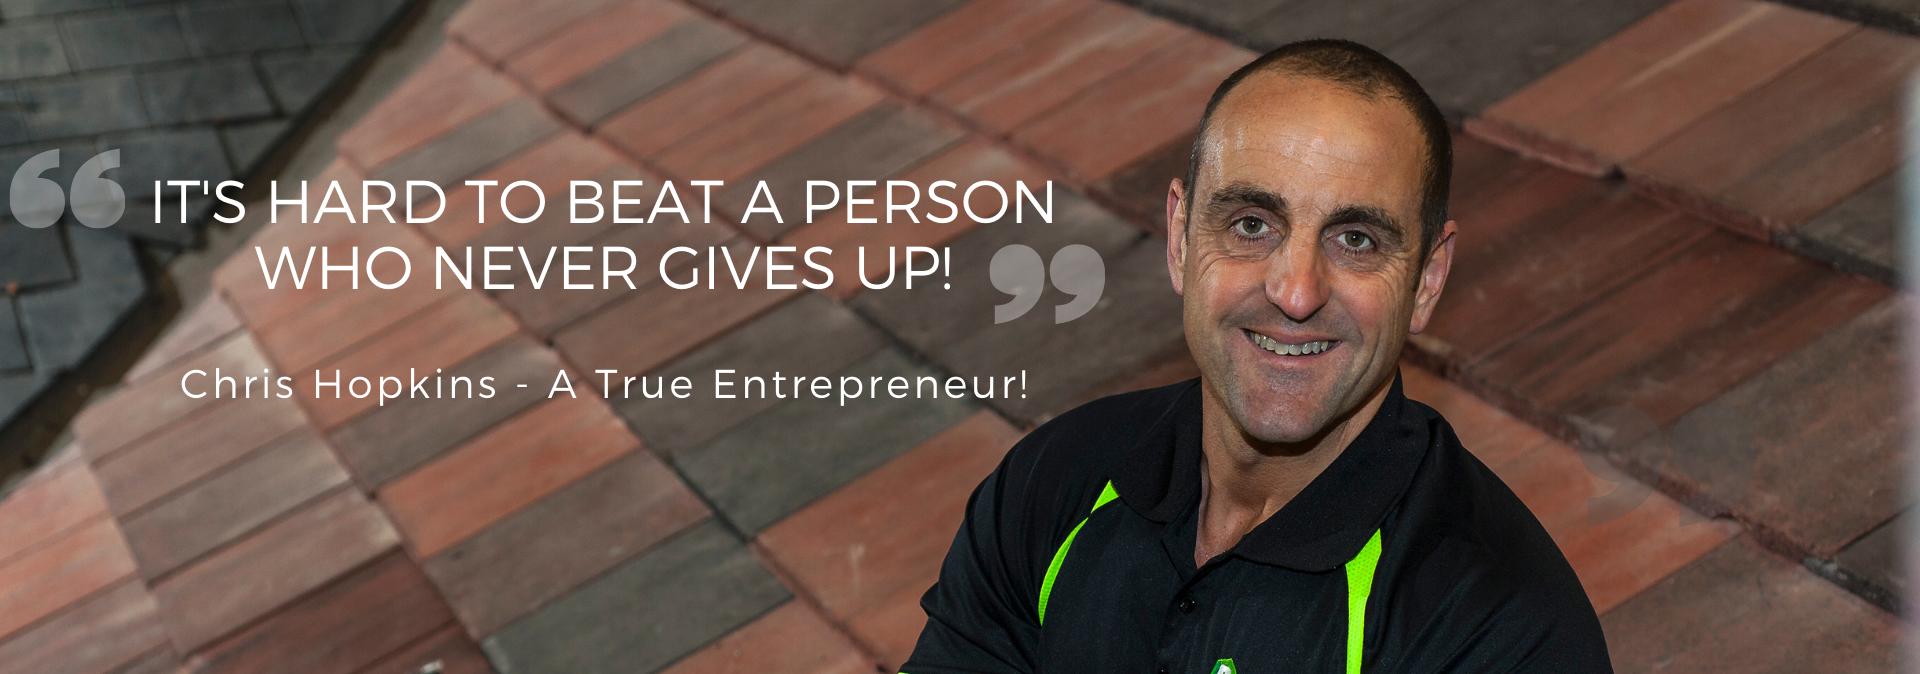 It's hard to beat a person who never gives up!